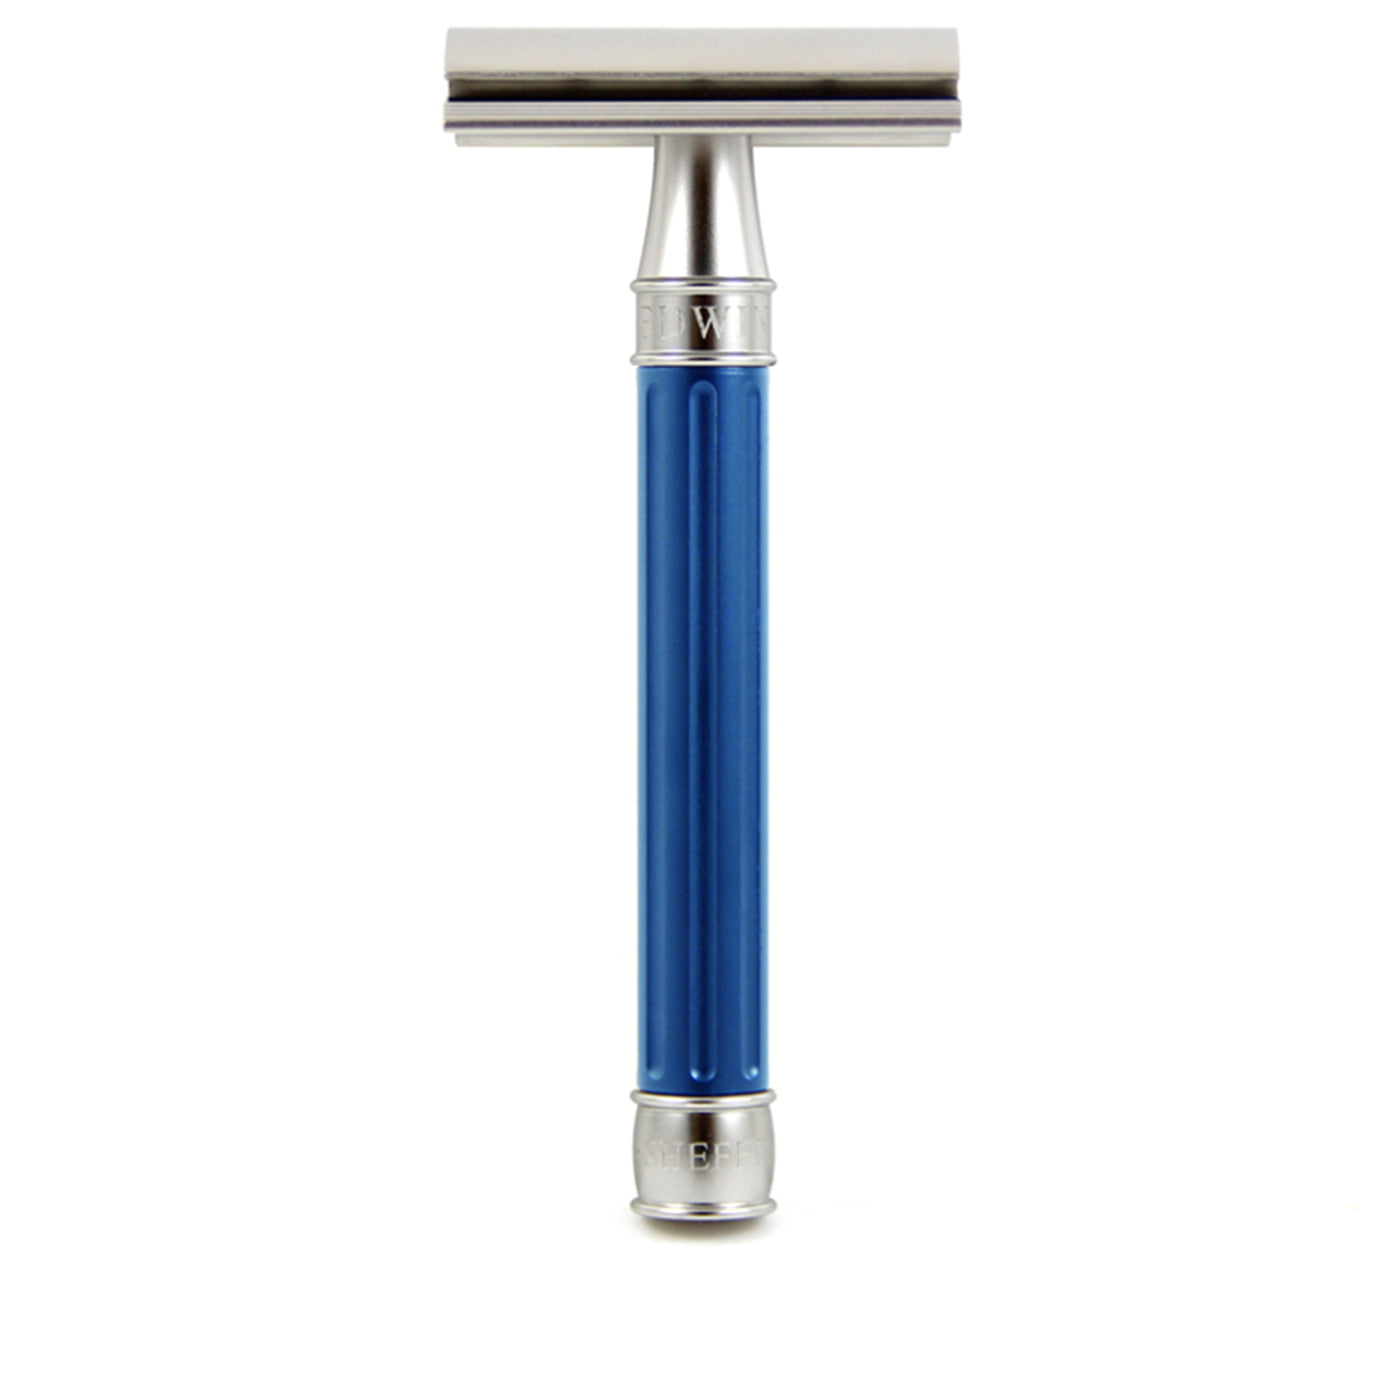 Edwin Jagger 3ONE6 Stainless Steel Double Edge Safety Razor, Blue